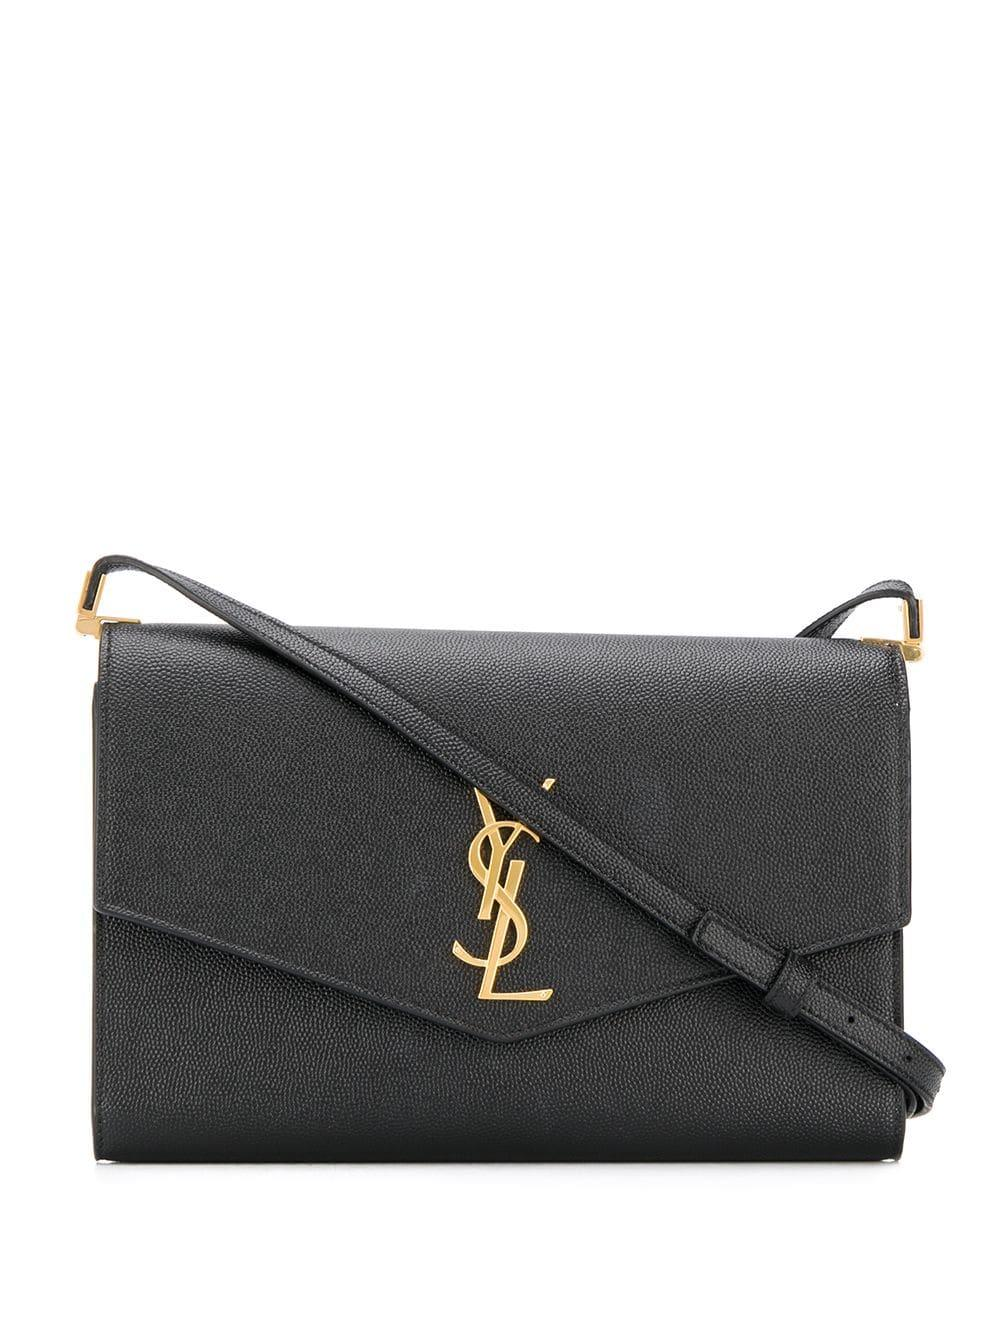 Leather Wallet On Chain Item # 6077531GF0J